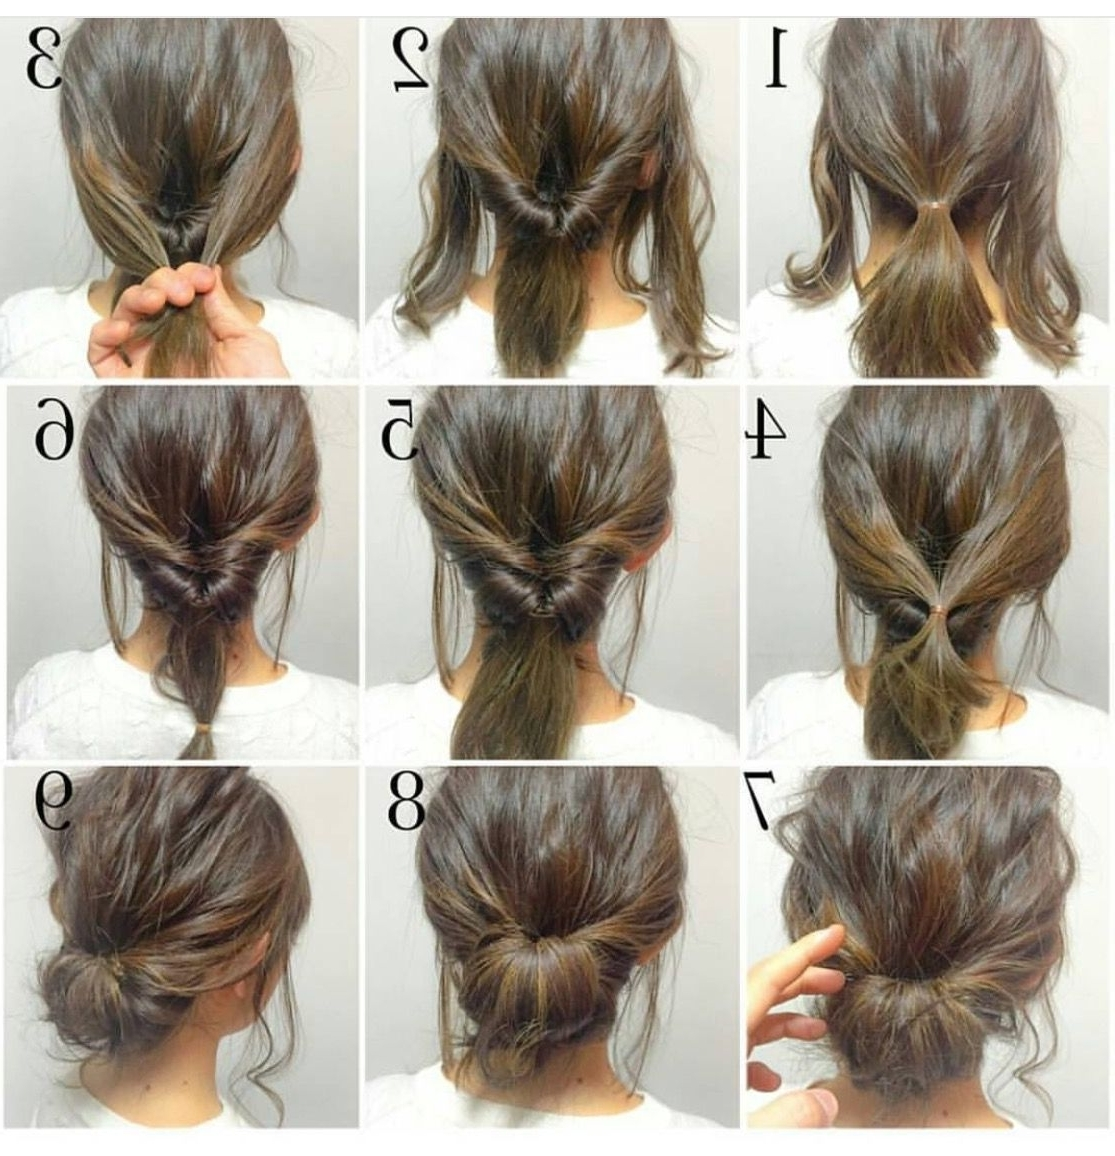 4 Messy Updos For Long Hair | Hairz | Pinterest | Updos, Hair Style Within Easy Updos For Long Hair (View 6 of 15)